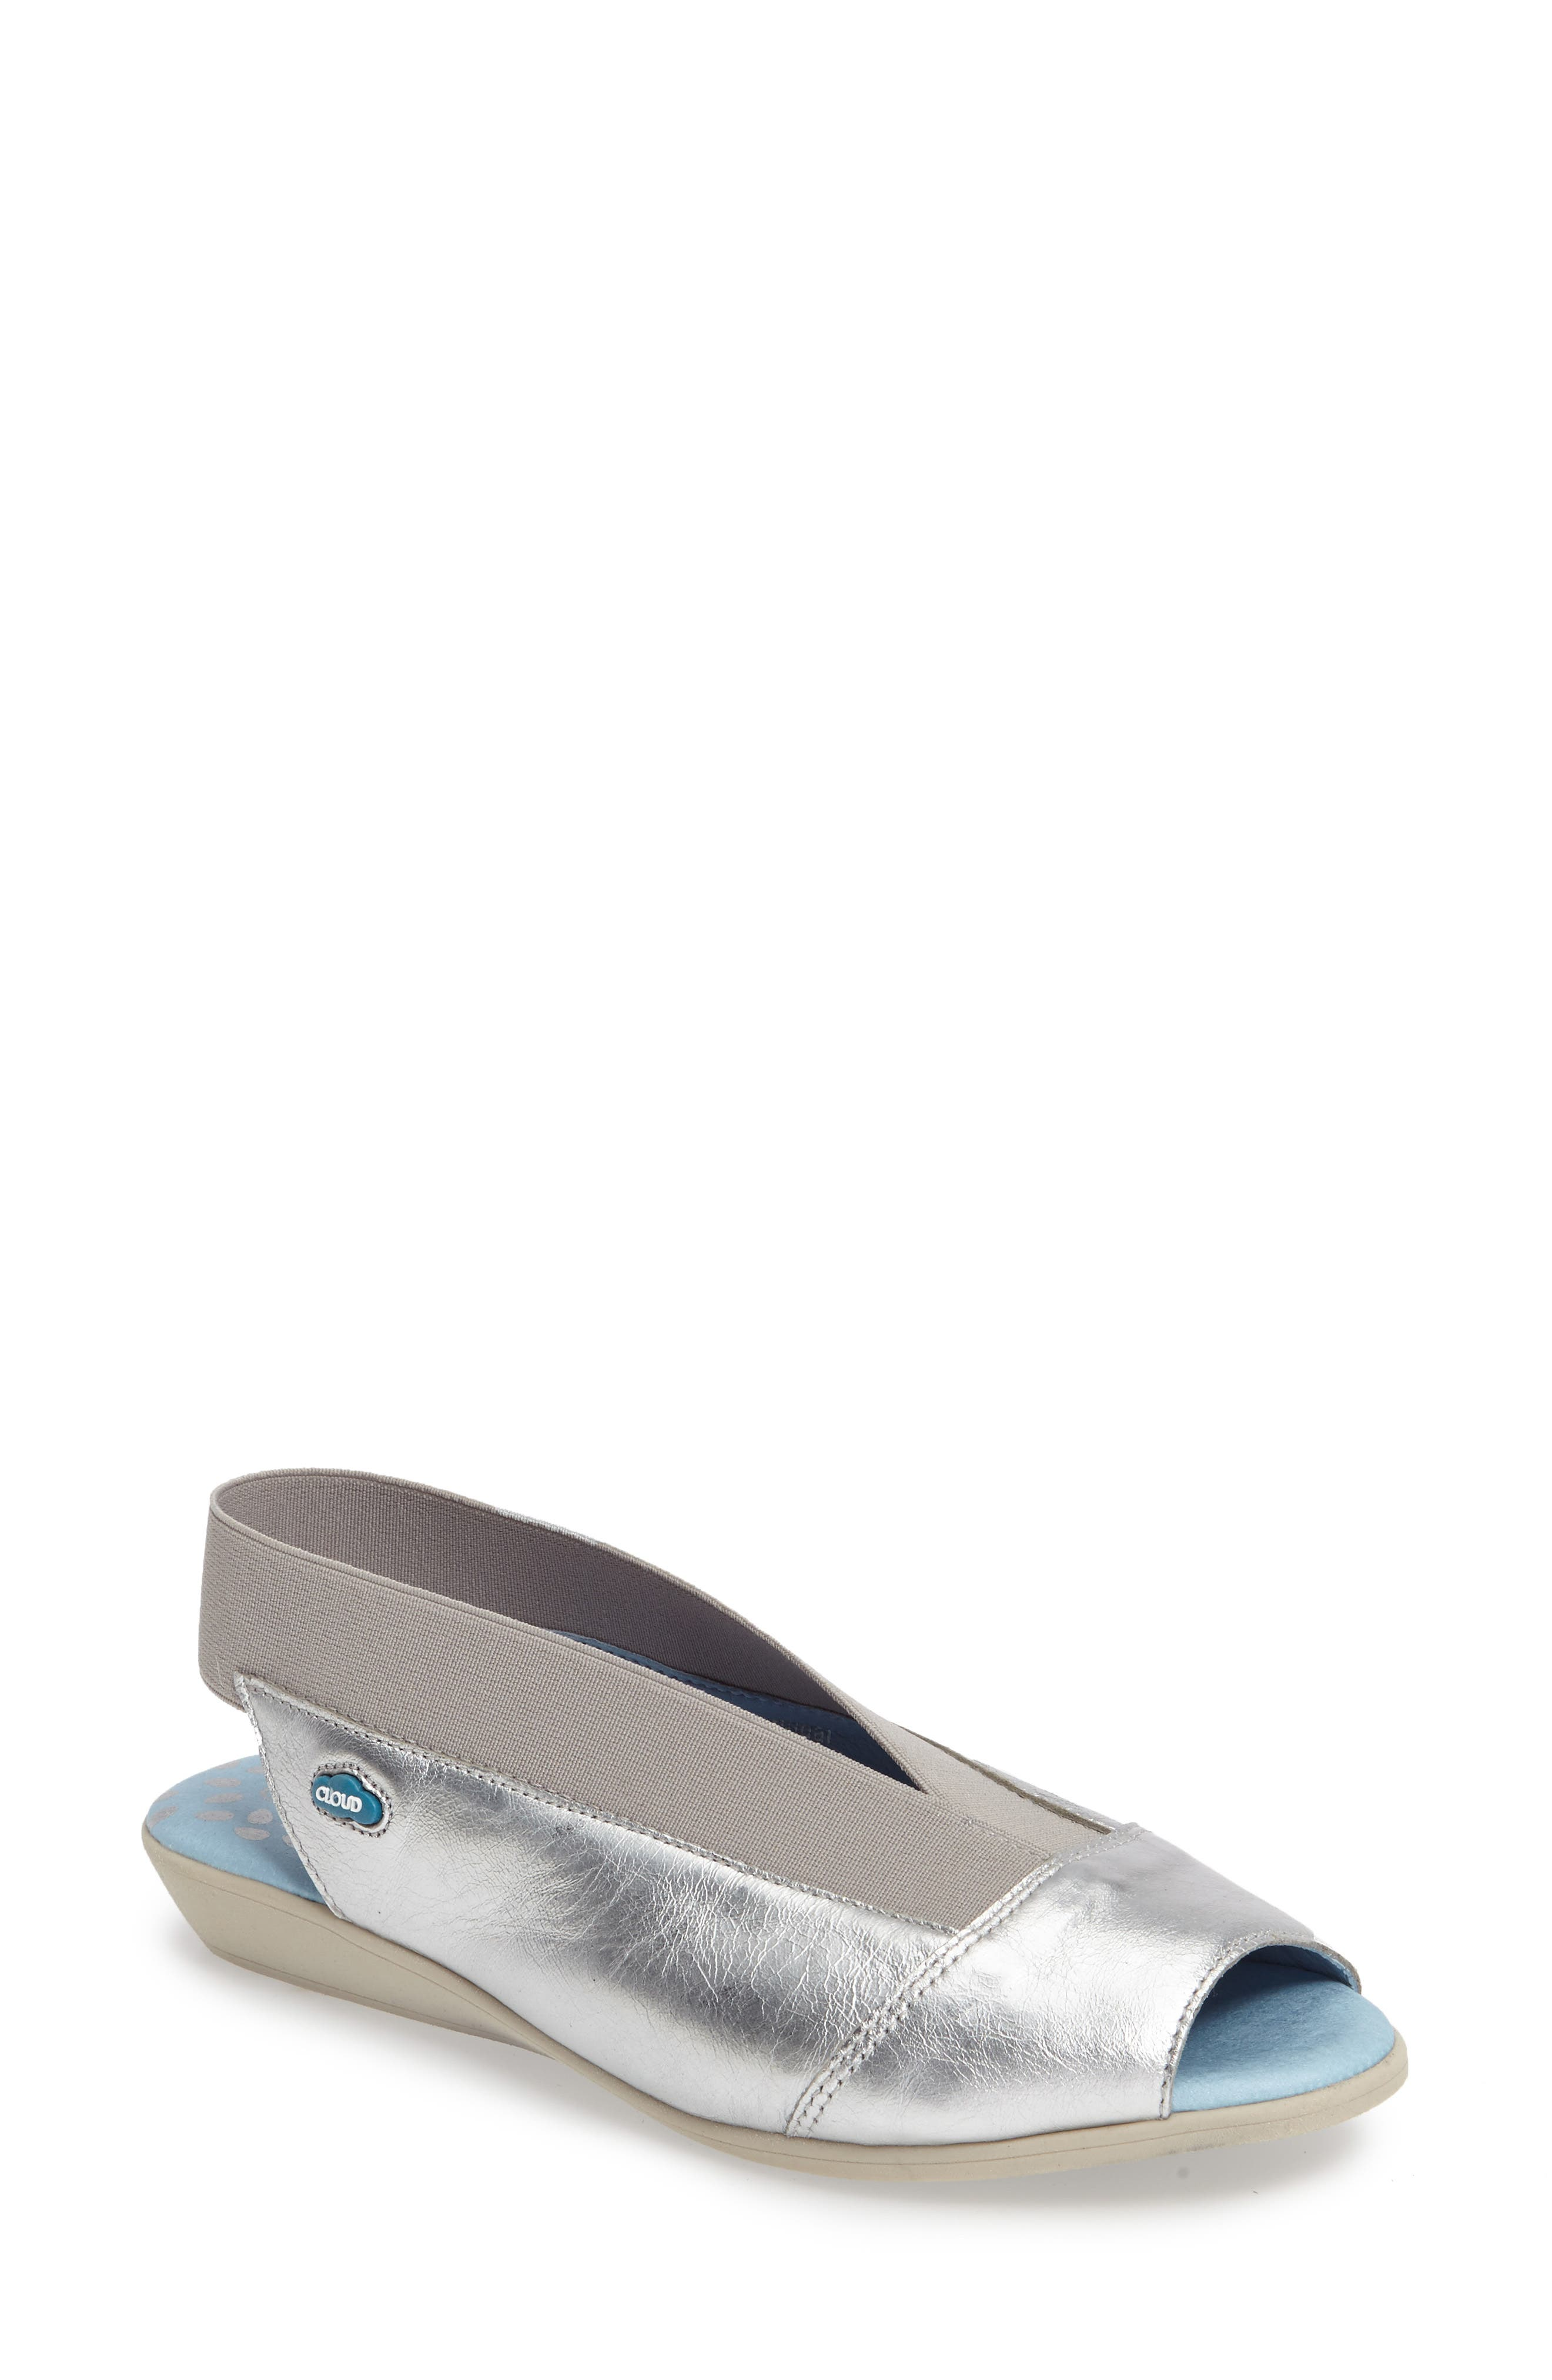 CLOUD 'Caliber' Peep Toe Leather Flat